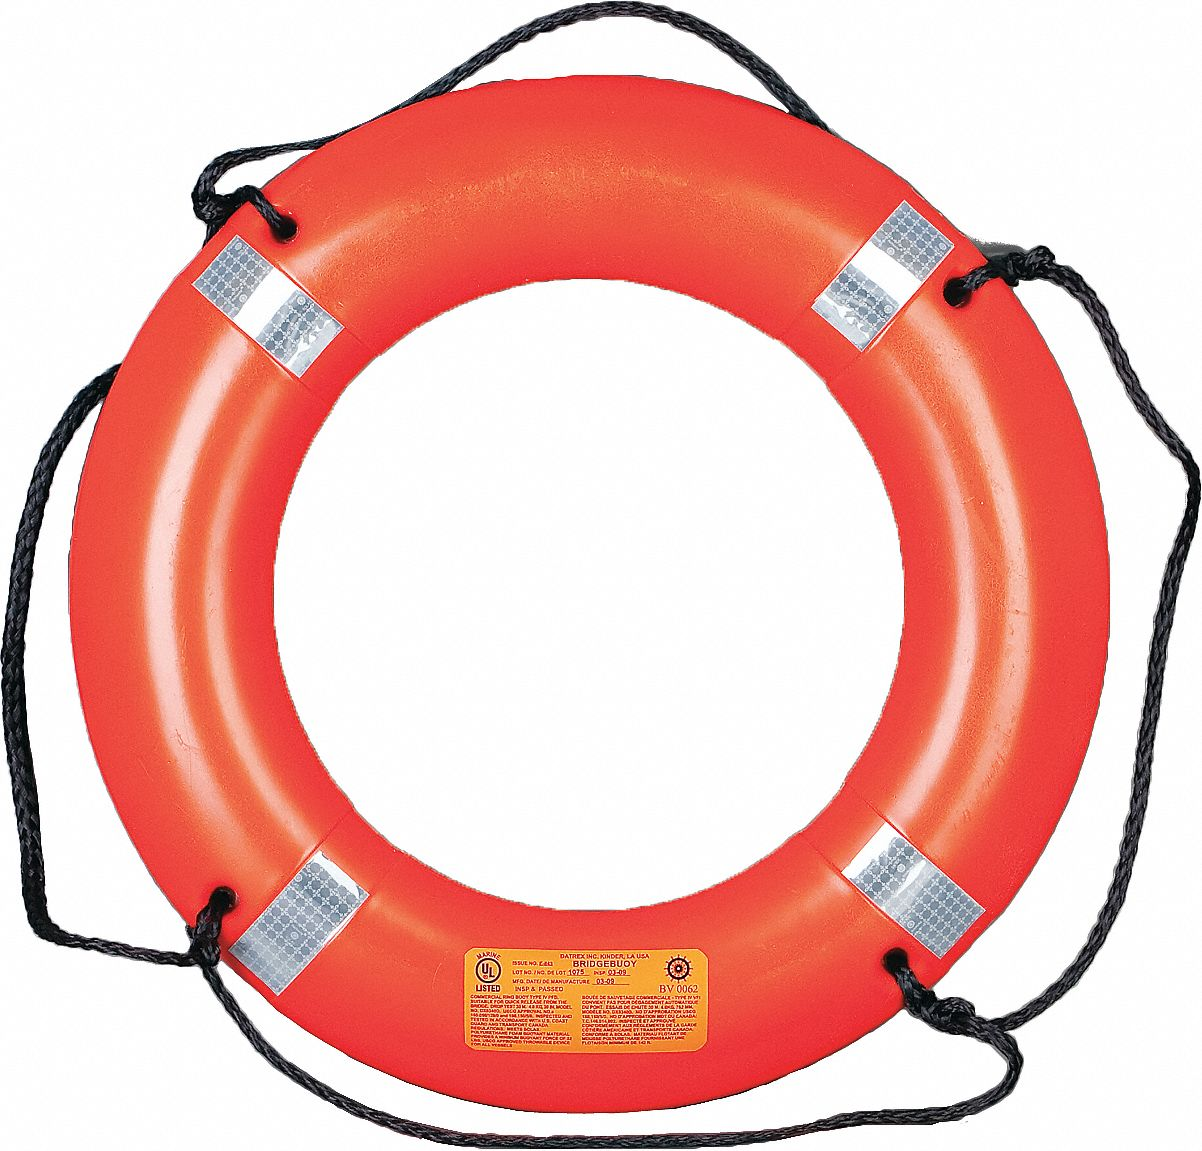 Survival Ring Buoy,  30 W x 4-1/2 H x 30 in Dia,  Low Density Polyethylene (LDPE)